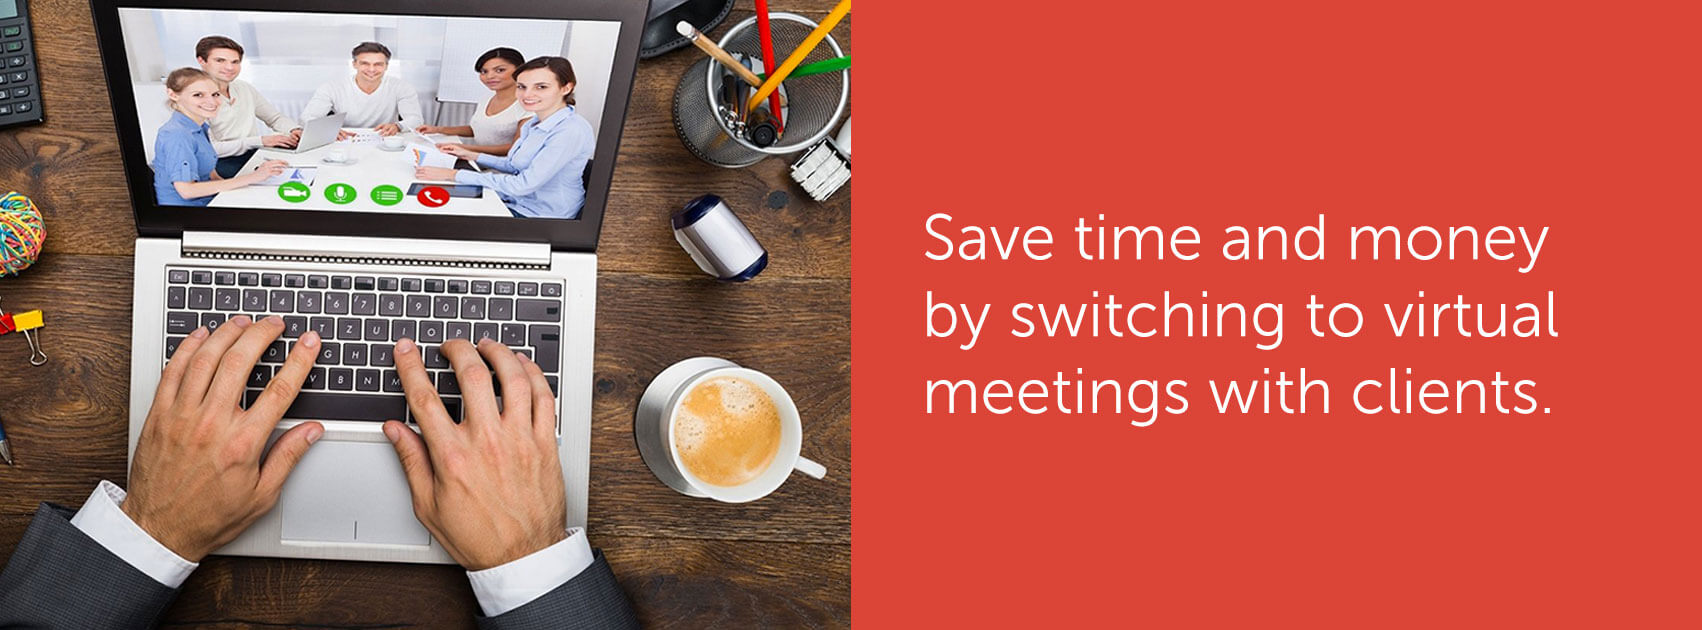 Save Time and Money with Virtual Meetings